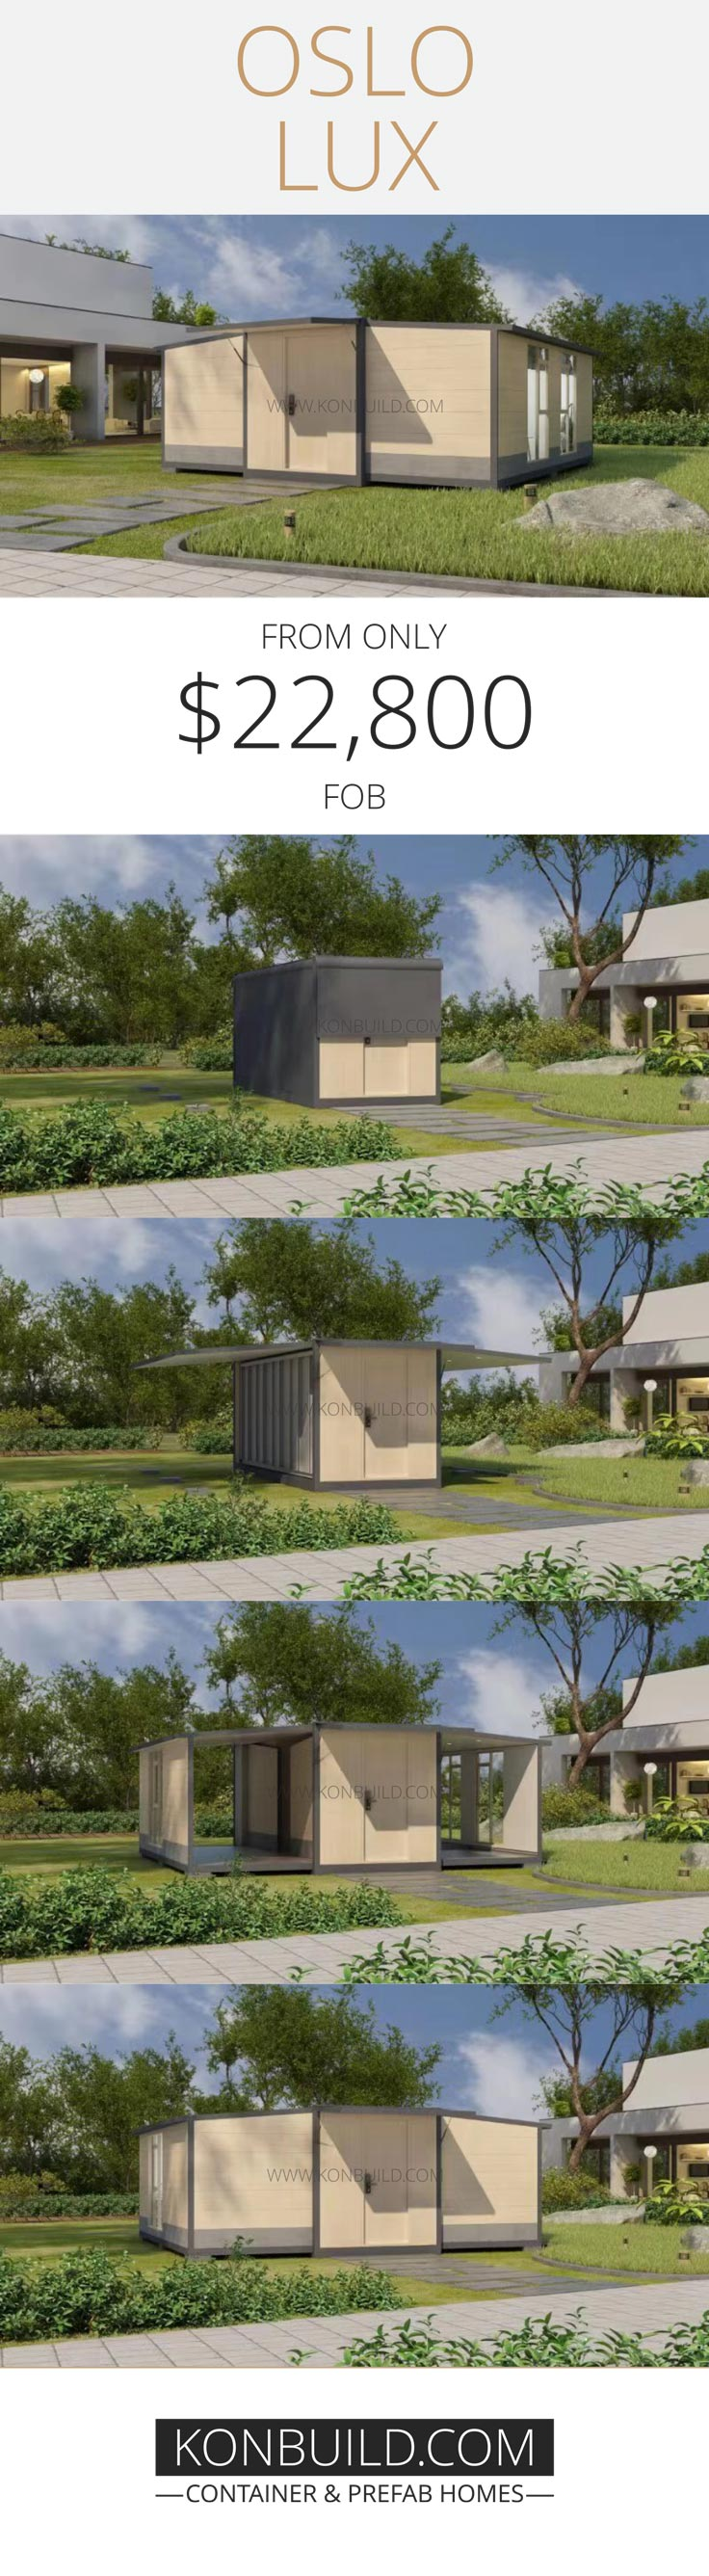 A foldable and expandable shipping container home.